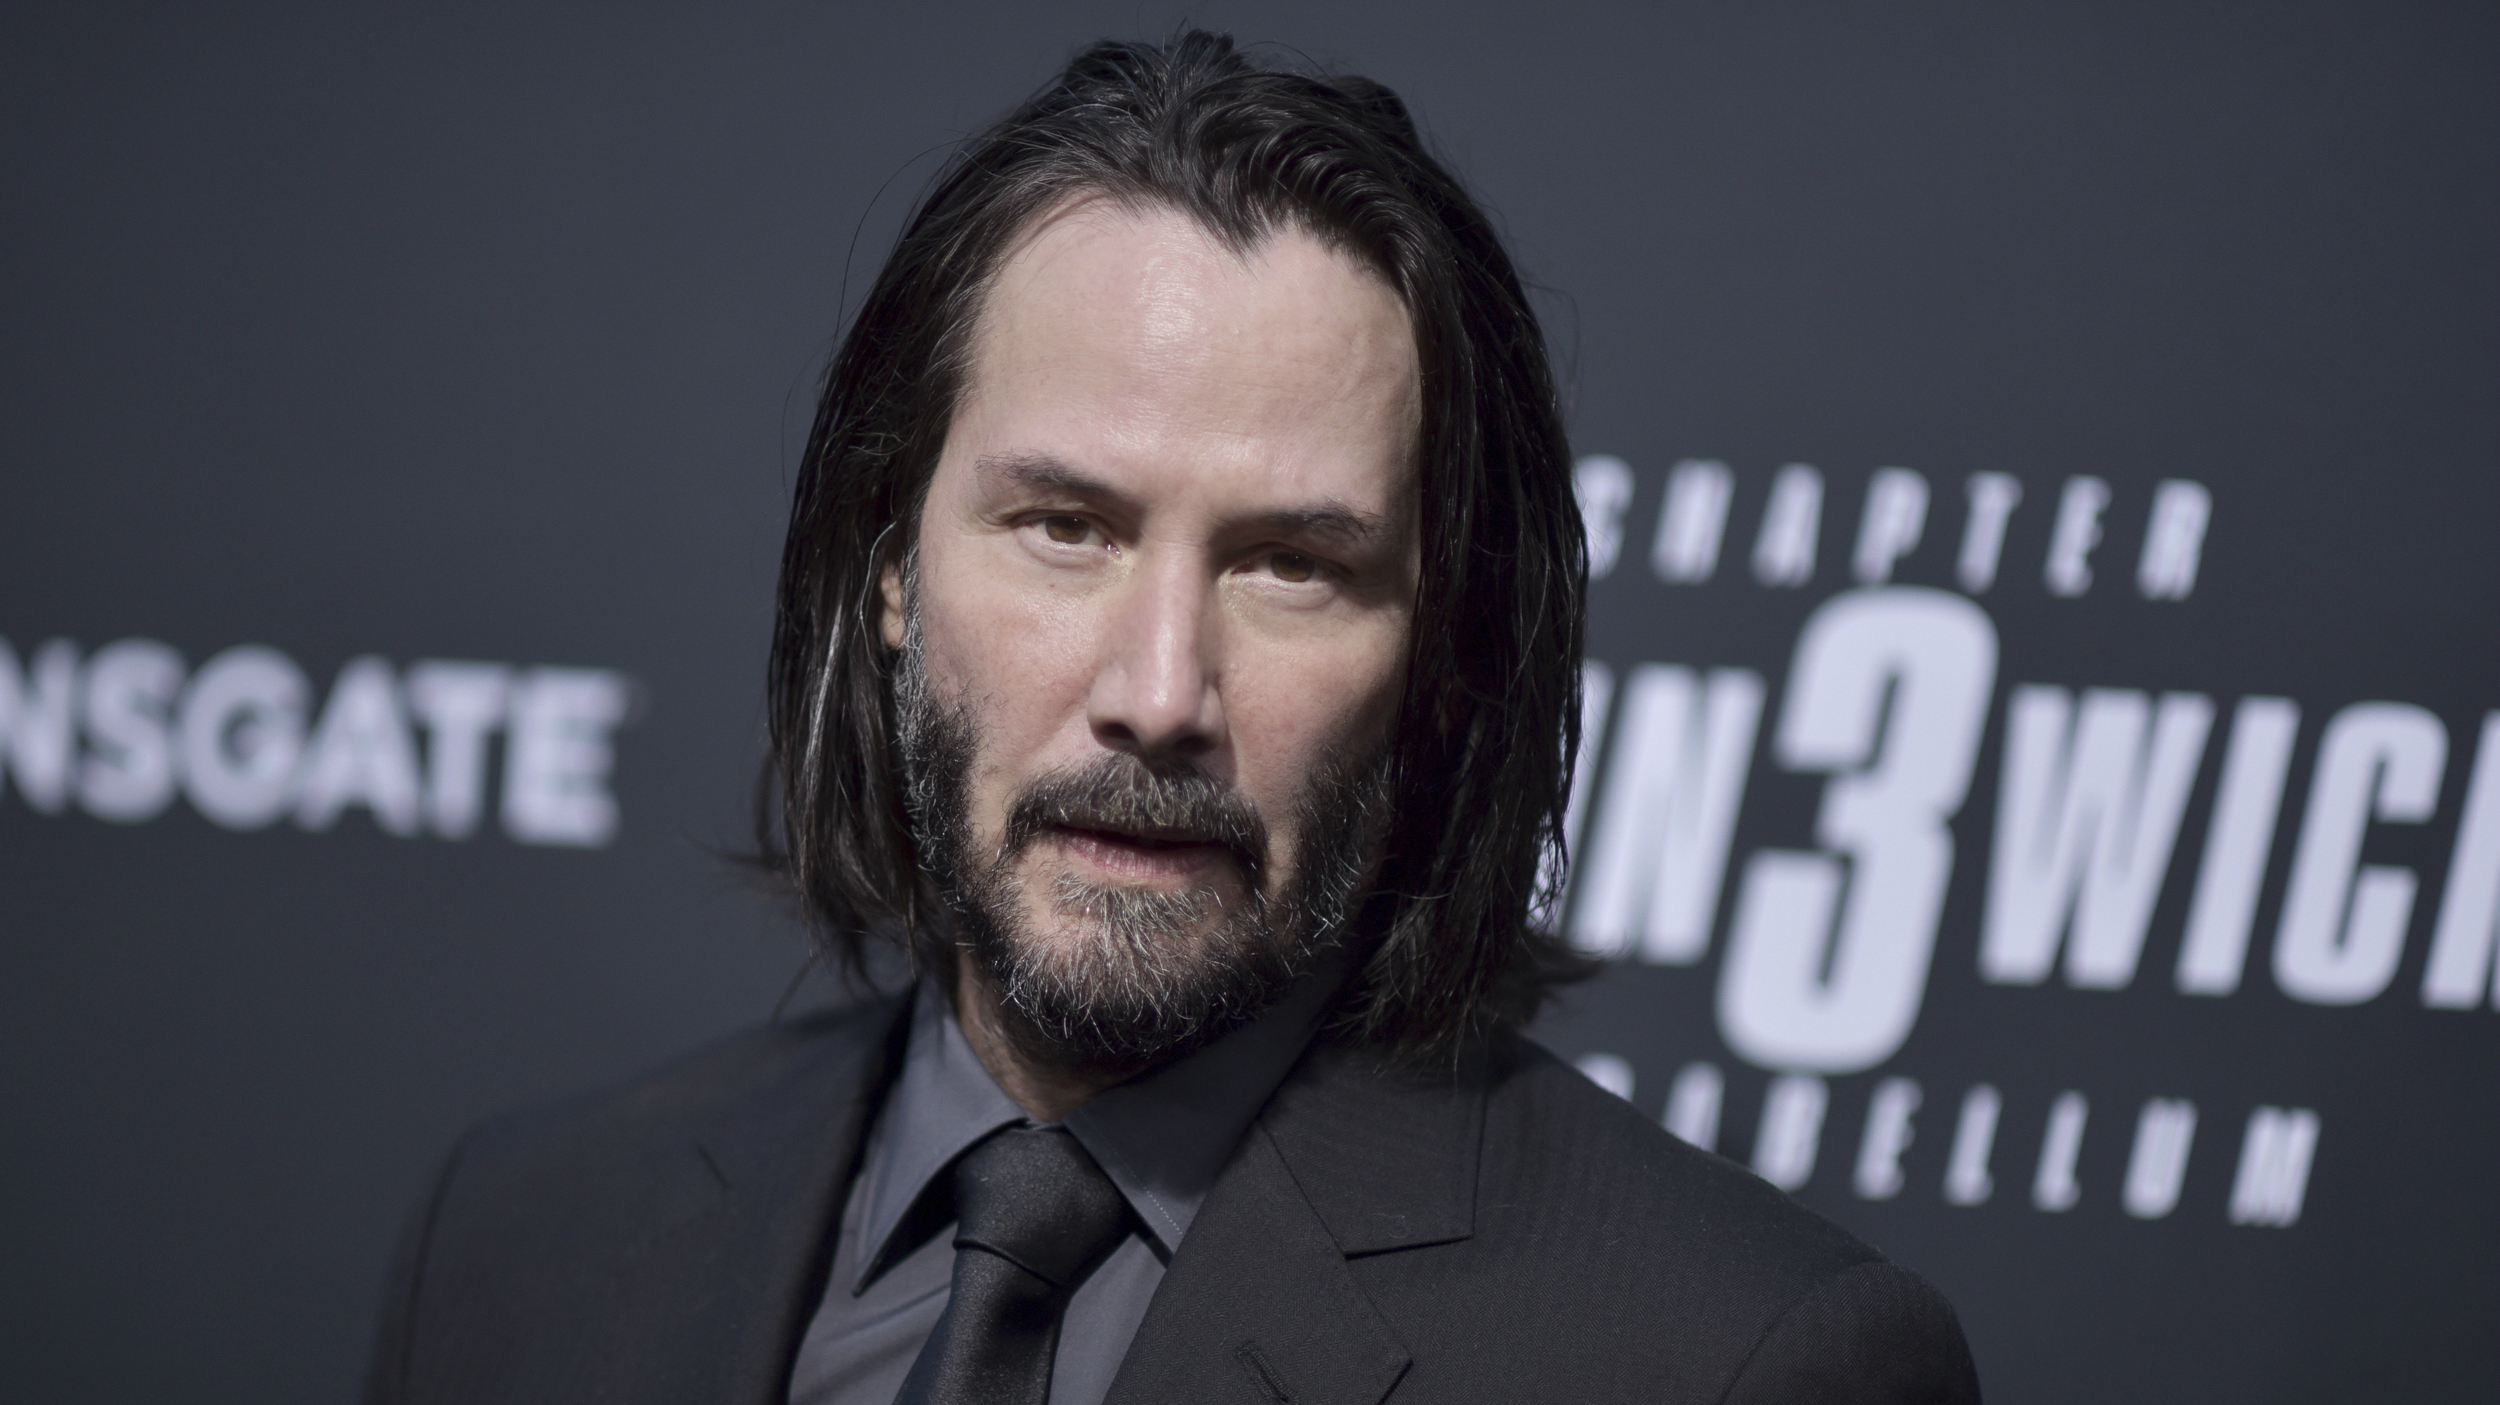 An image of Keanu Reeves at the John Wick 3 premier.